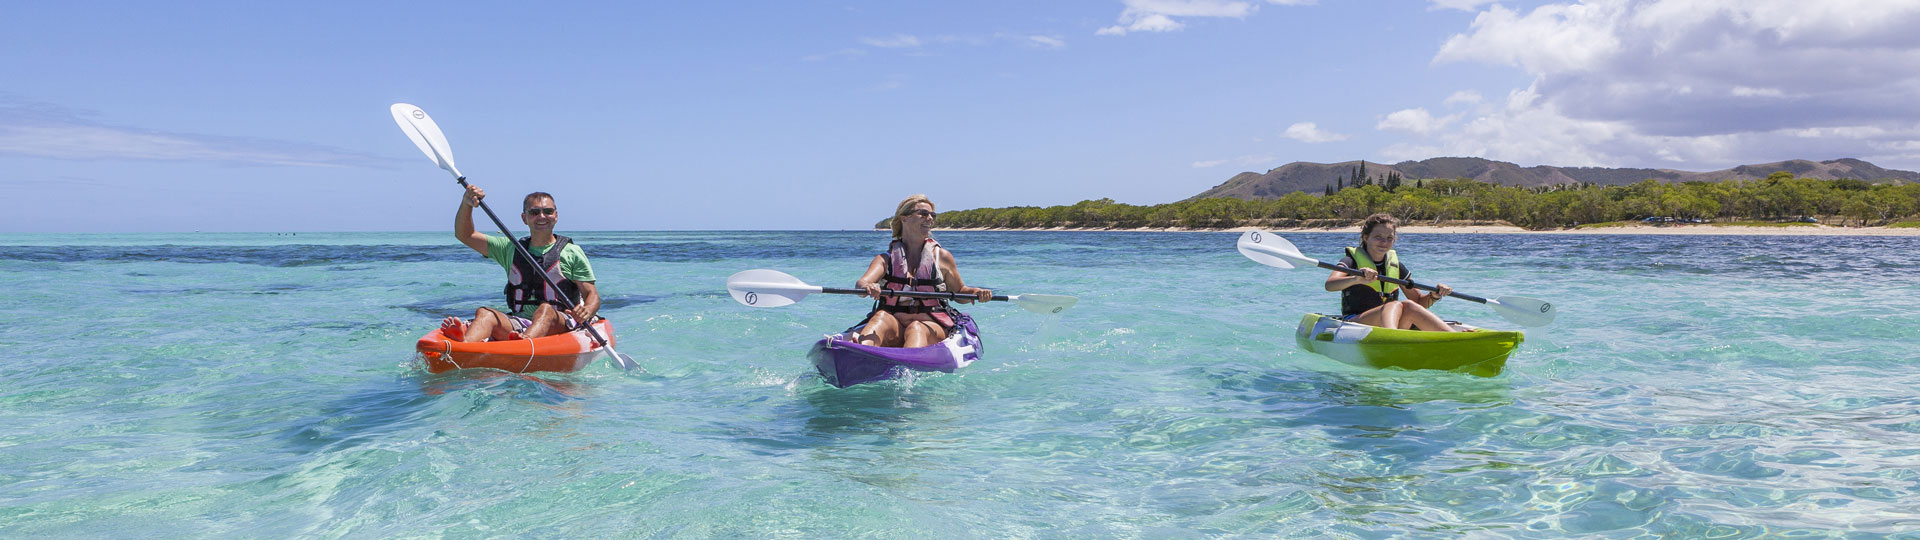 Kayak on the lagoon in New Caledonia